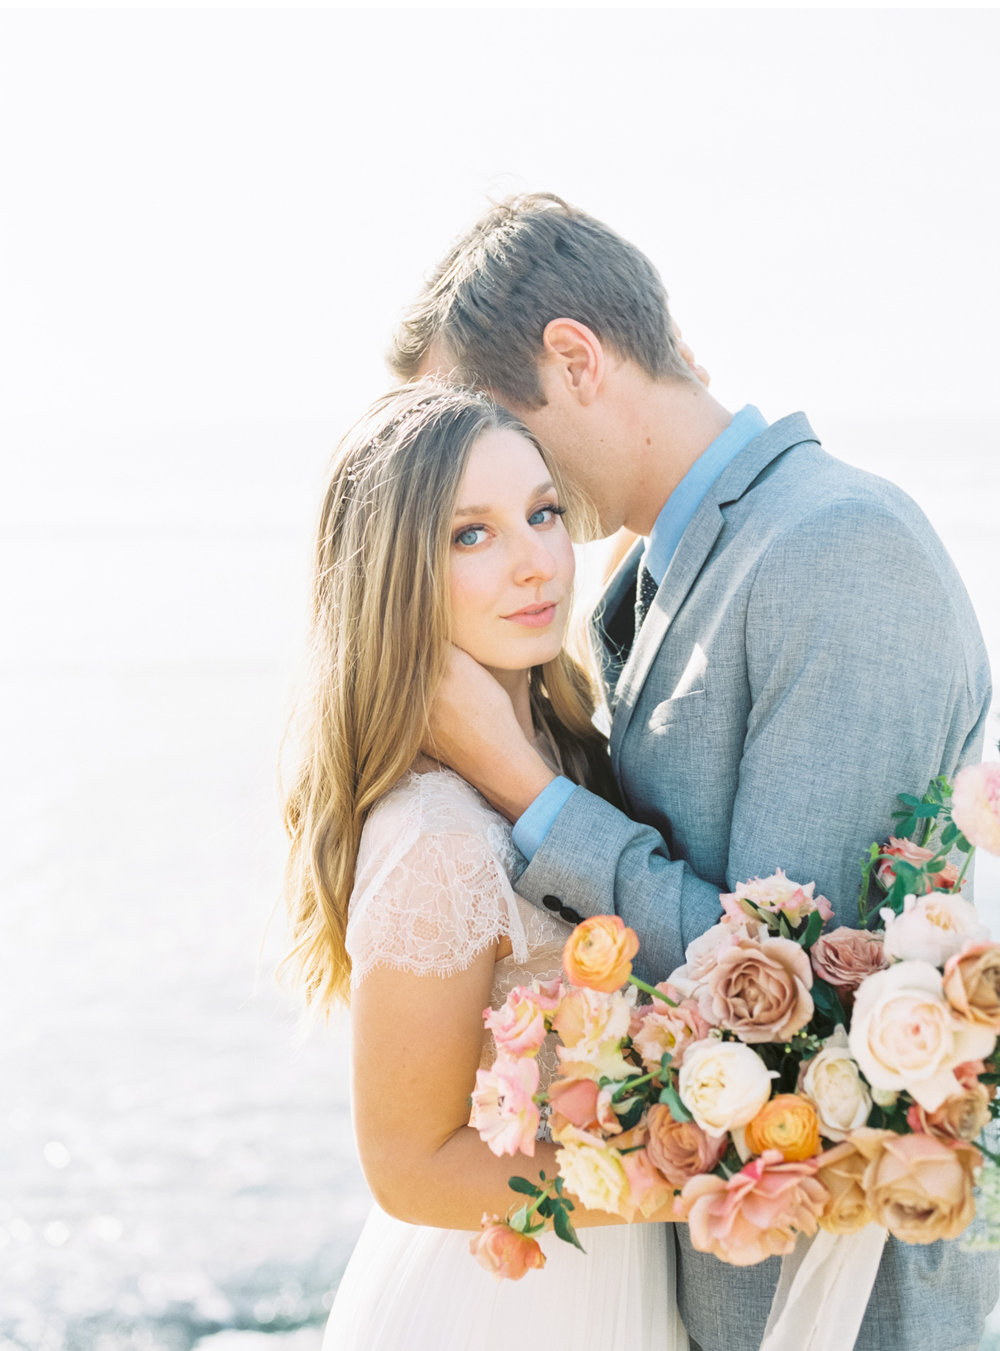 Style-Me-Pretty-California-Beach-Wedding-Natalie-Schutt-Photography_15.jpg